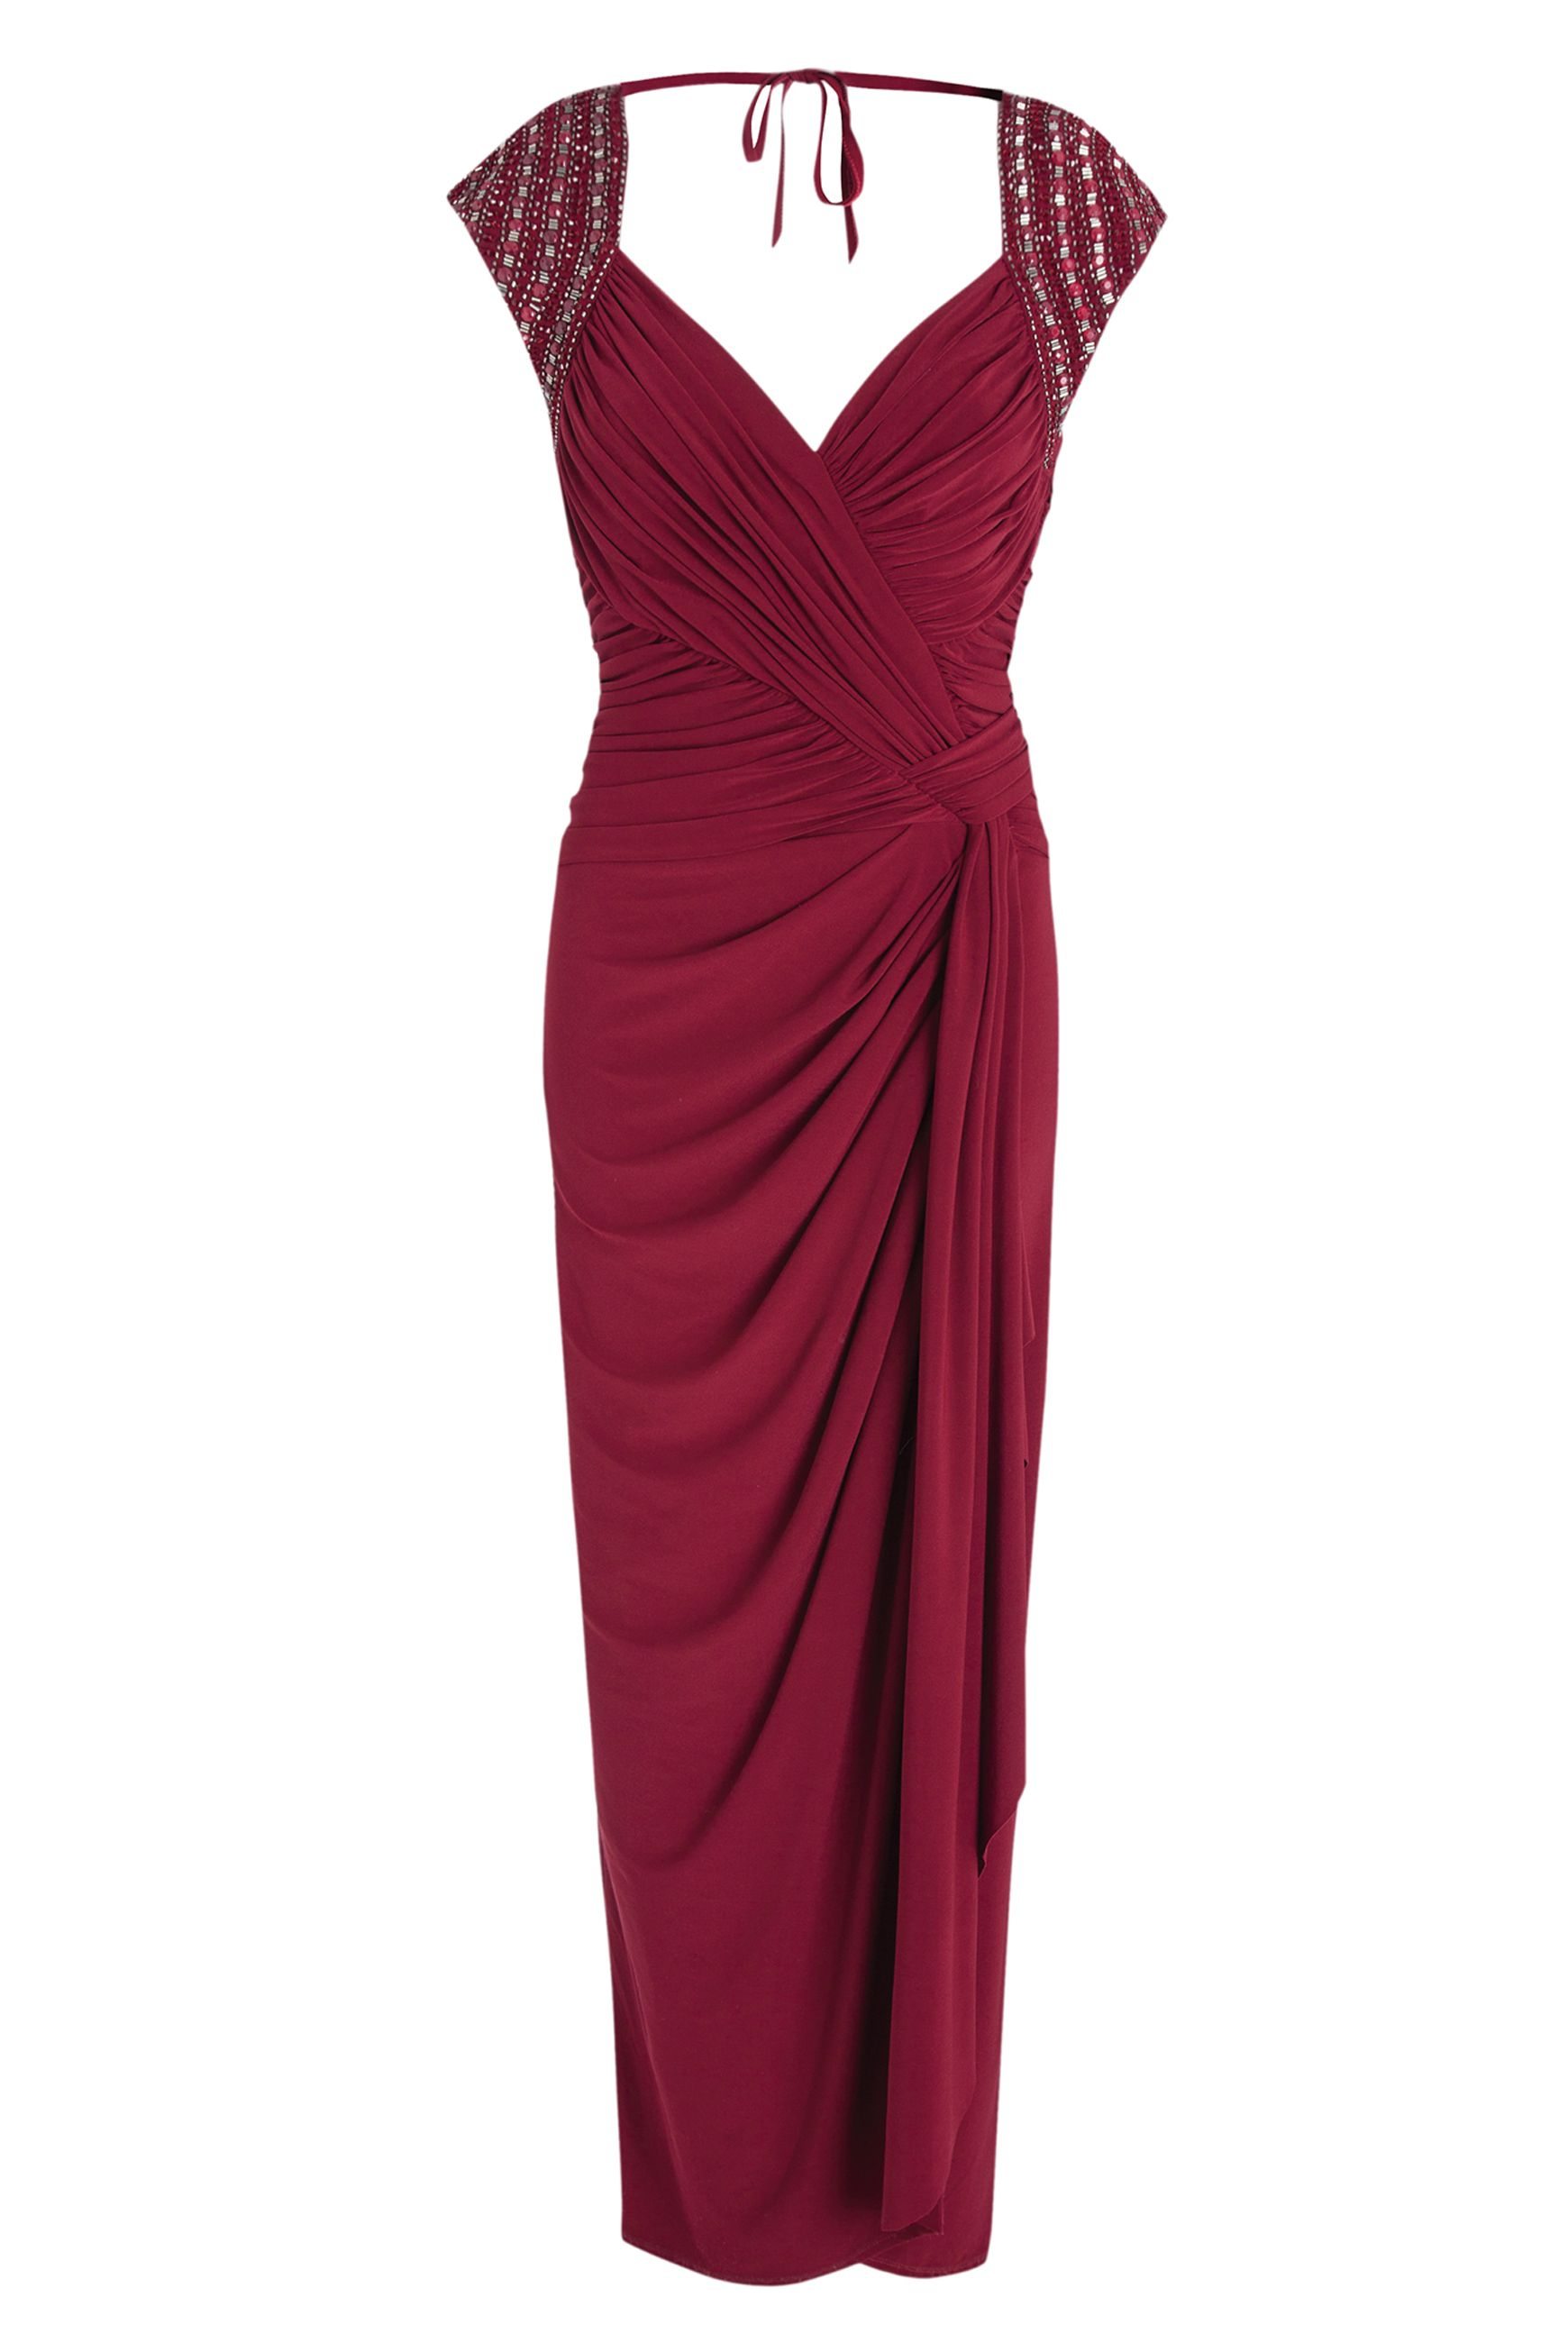 20 gorgeous high street bridesmaid dresses for 2015 high street 20 gorgeous high street bridesmaid dresses for 2015 ombrellifo Image collections